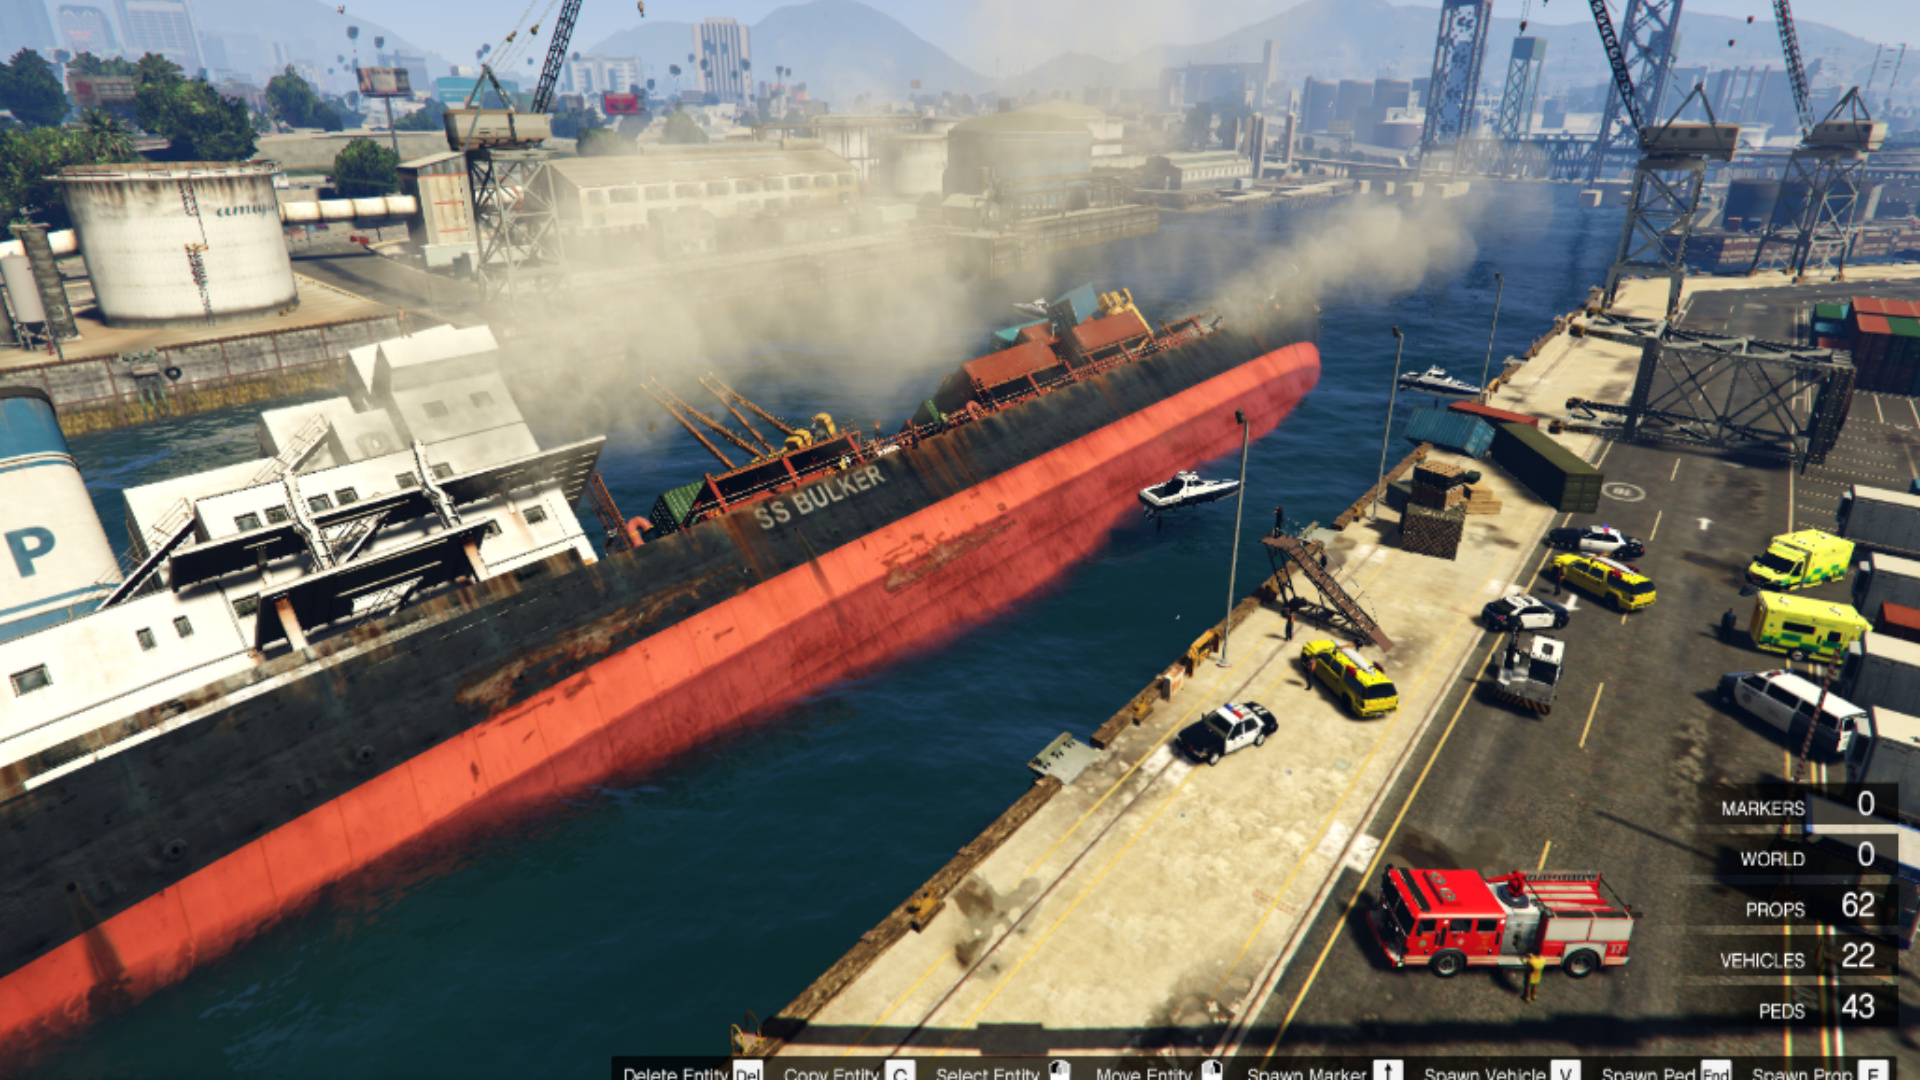 Tony Satunas How To Dock Boat Gta V